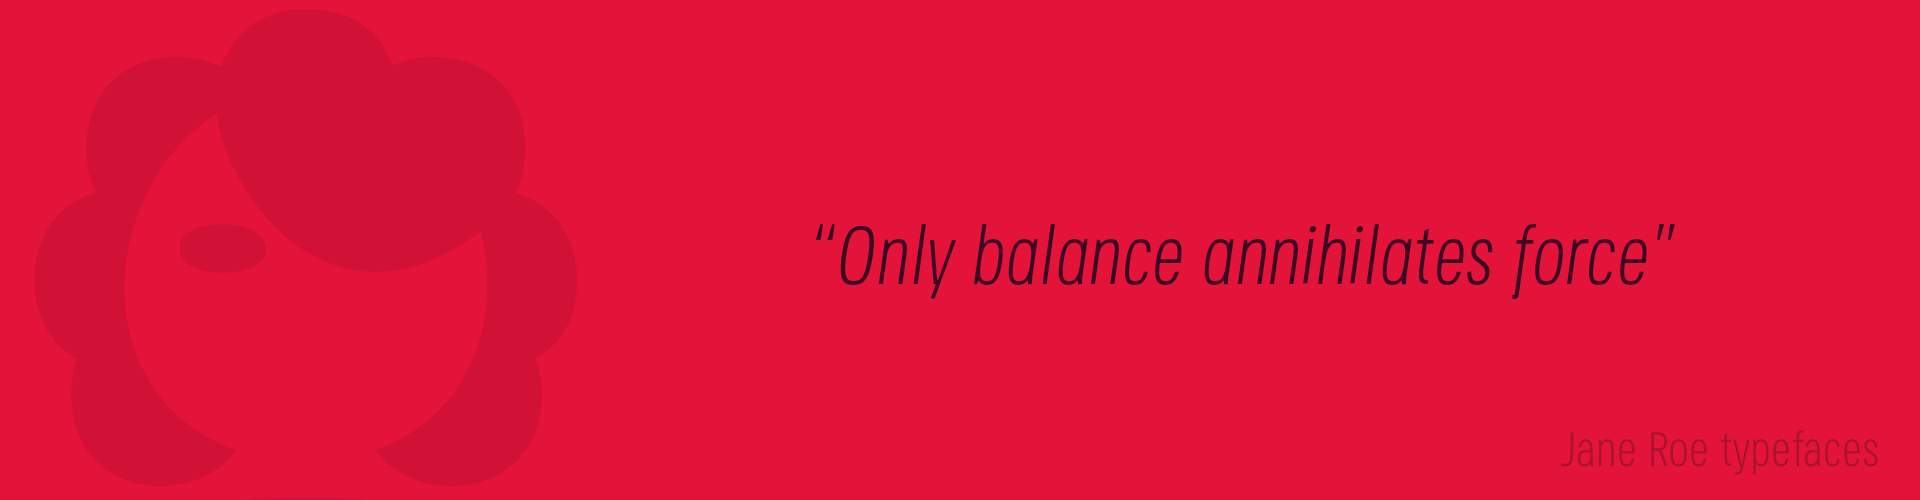 Jane Roe Typefaces. Only balance annihilates force.